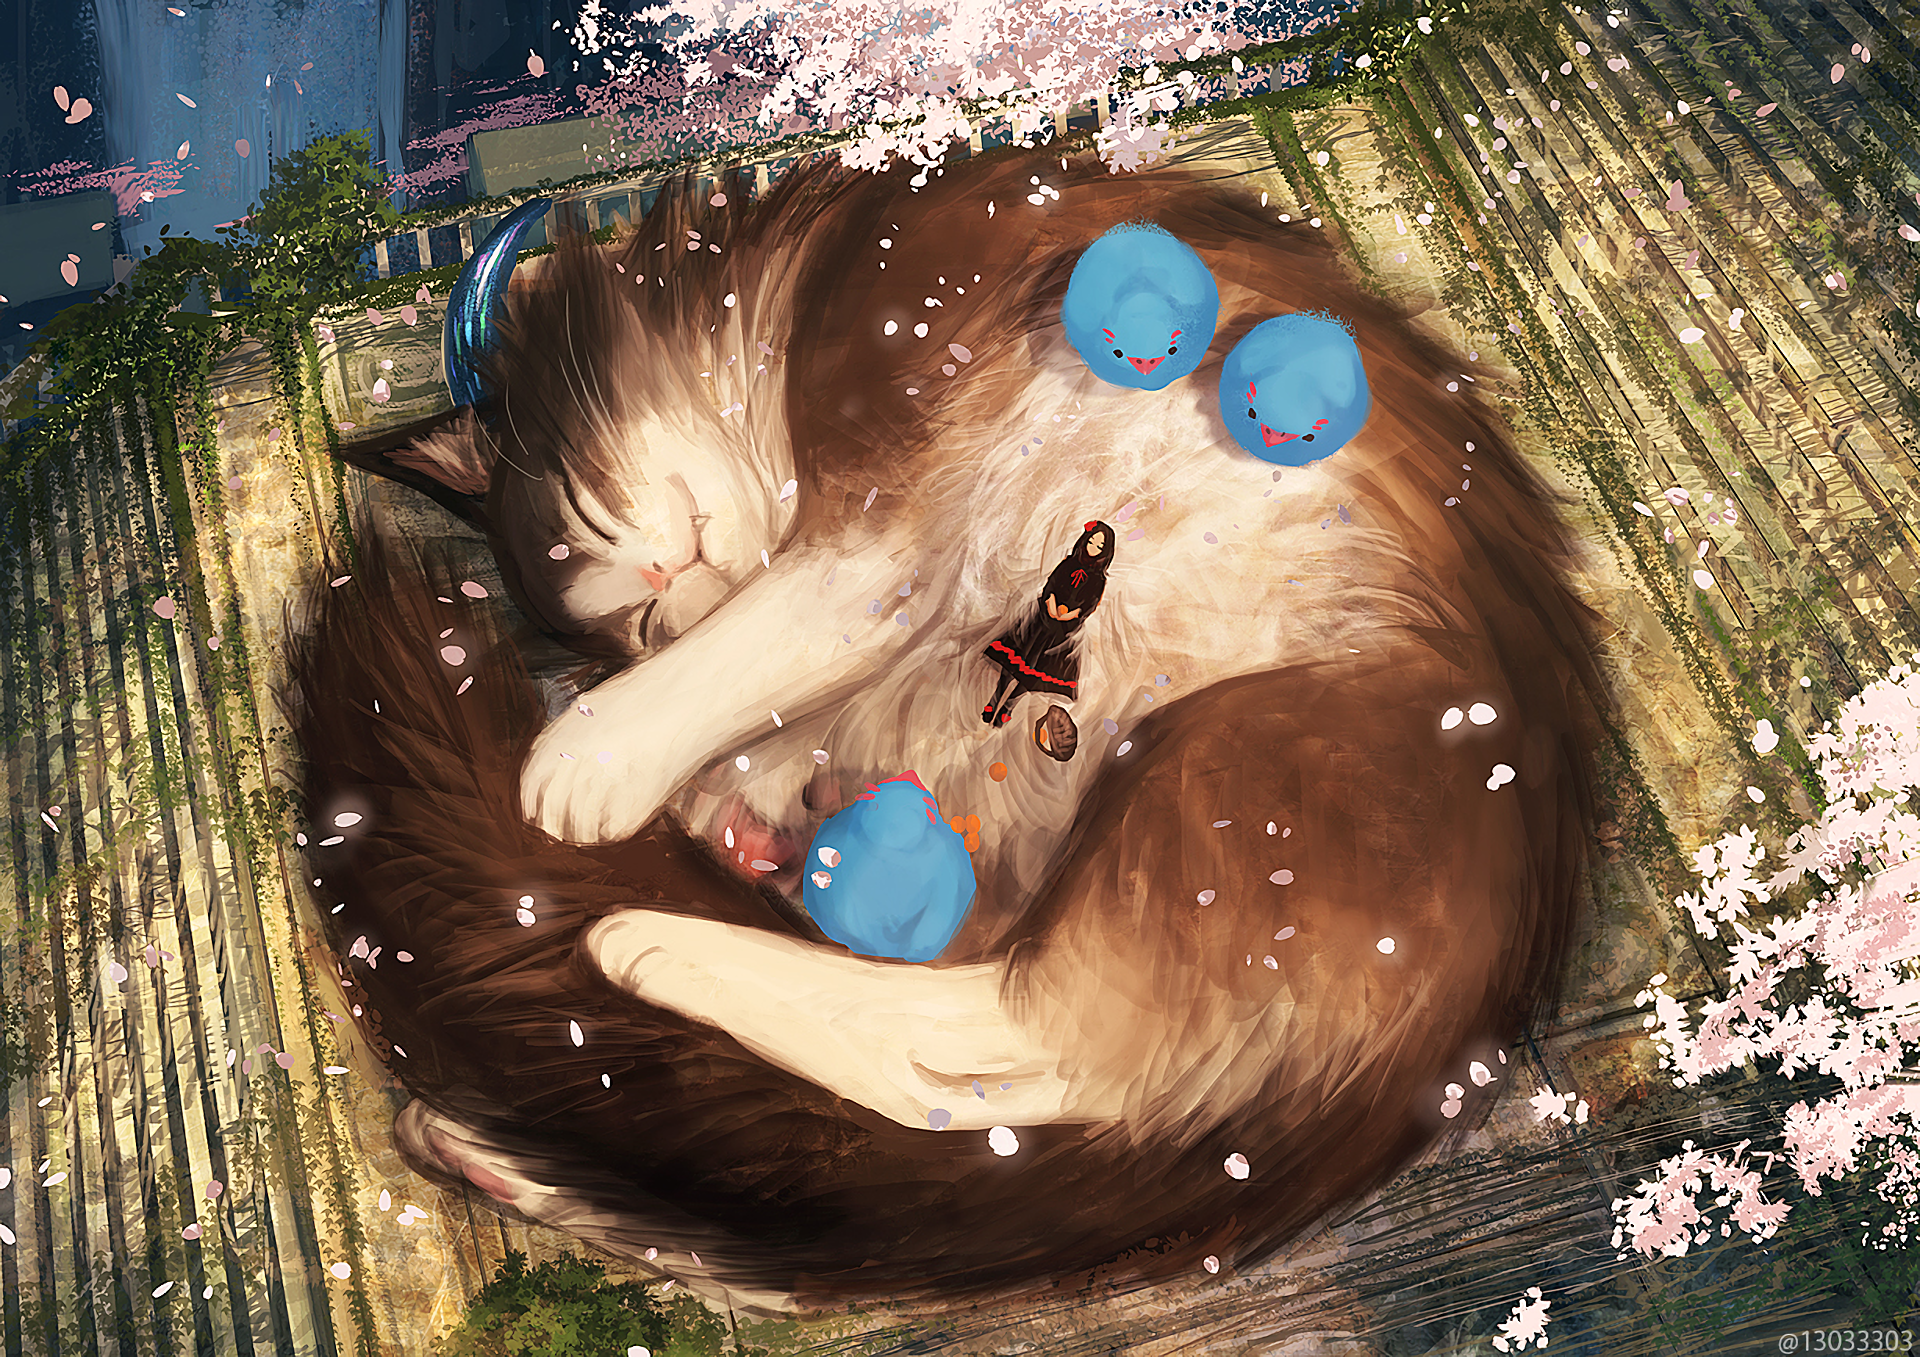 Anime - Original  Bird Cat Animal Cherry Blossom Petal Dress Girl Sleeping Wallpaper